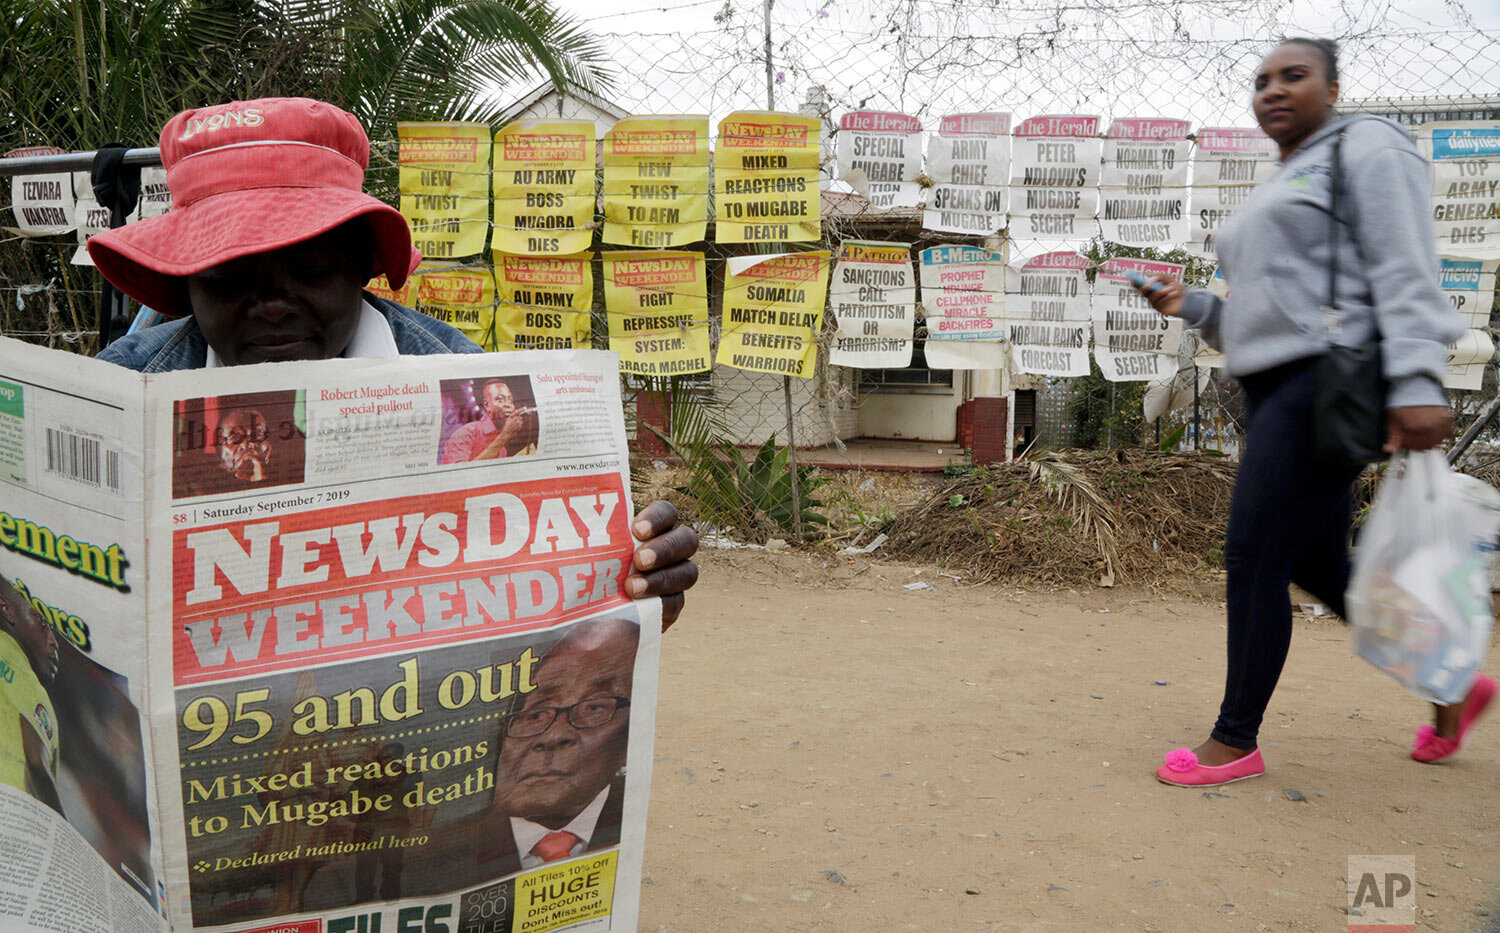 An ice cream vendor reads a newspaper on a street in Harare, Zimbabwe, Sept. 7, 2019. (AP Photo/Themba Hadebe)